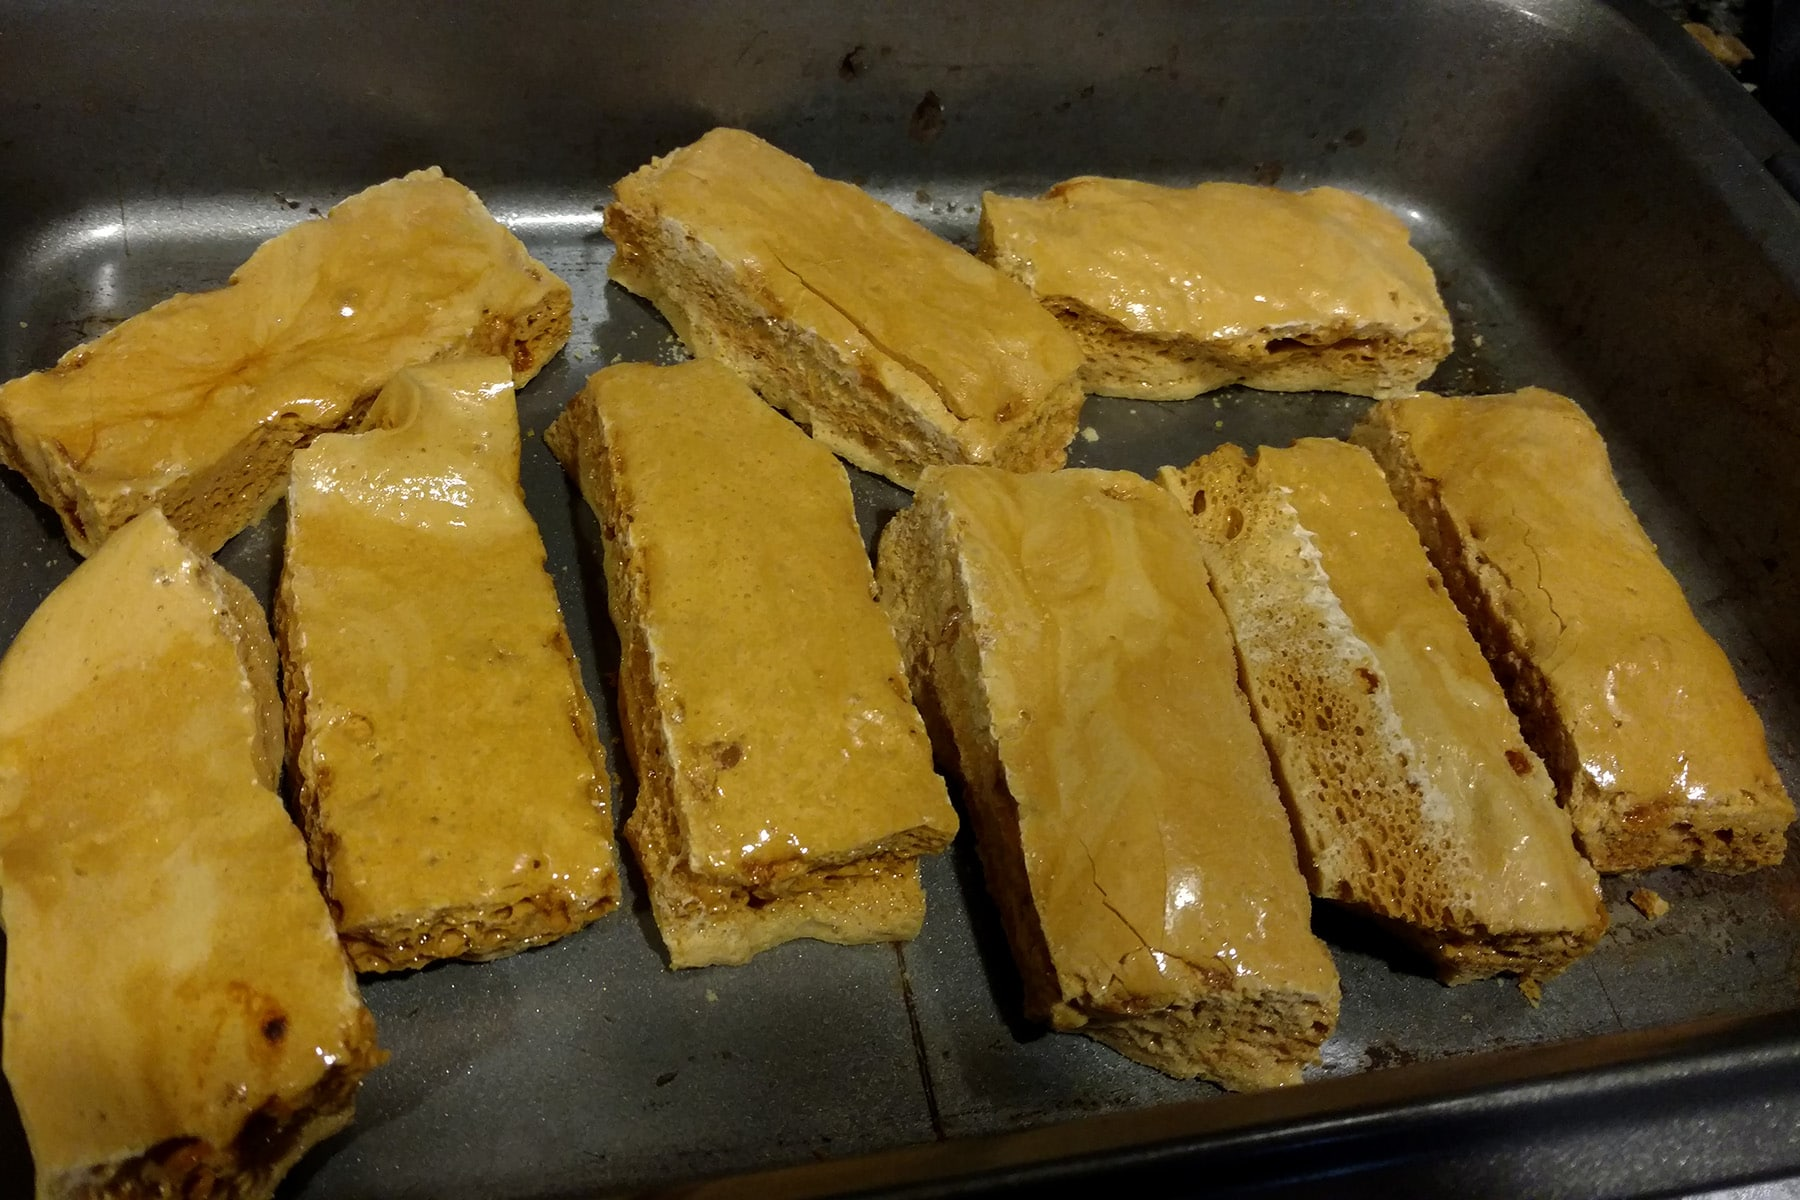 Several long, narrow bars of sponge toffee, arranged in a pan.